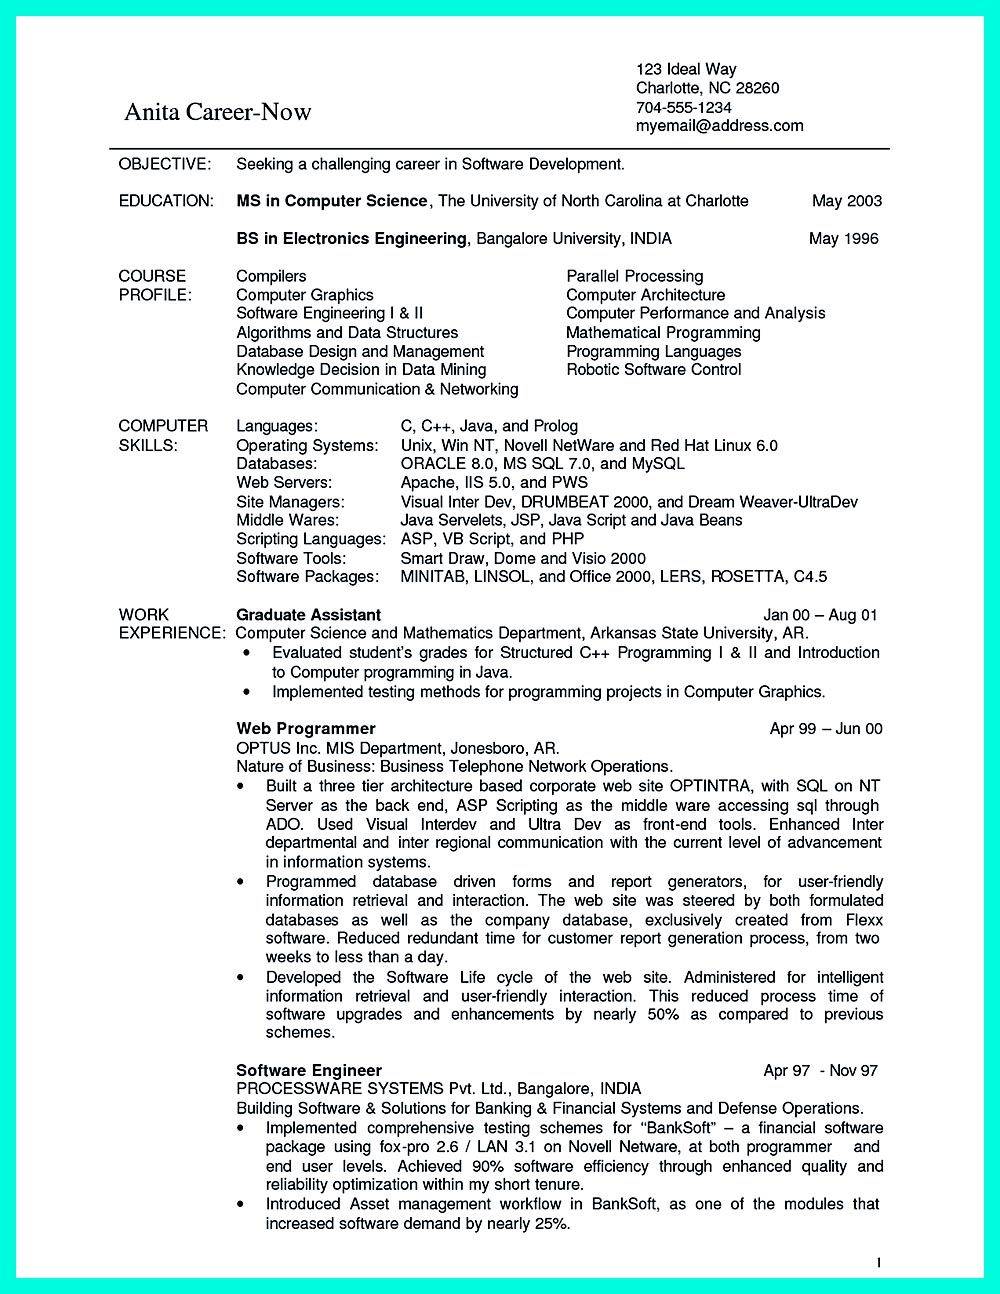 What You Will Include In The Computer Science Resume Depends On The Training As Well As The Previous Resume Objective Examples Science Student Computer Science